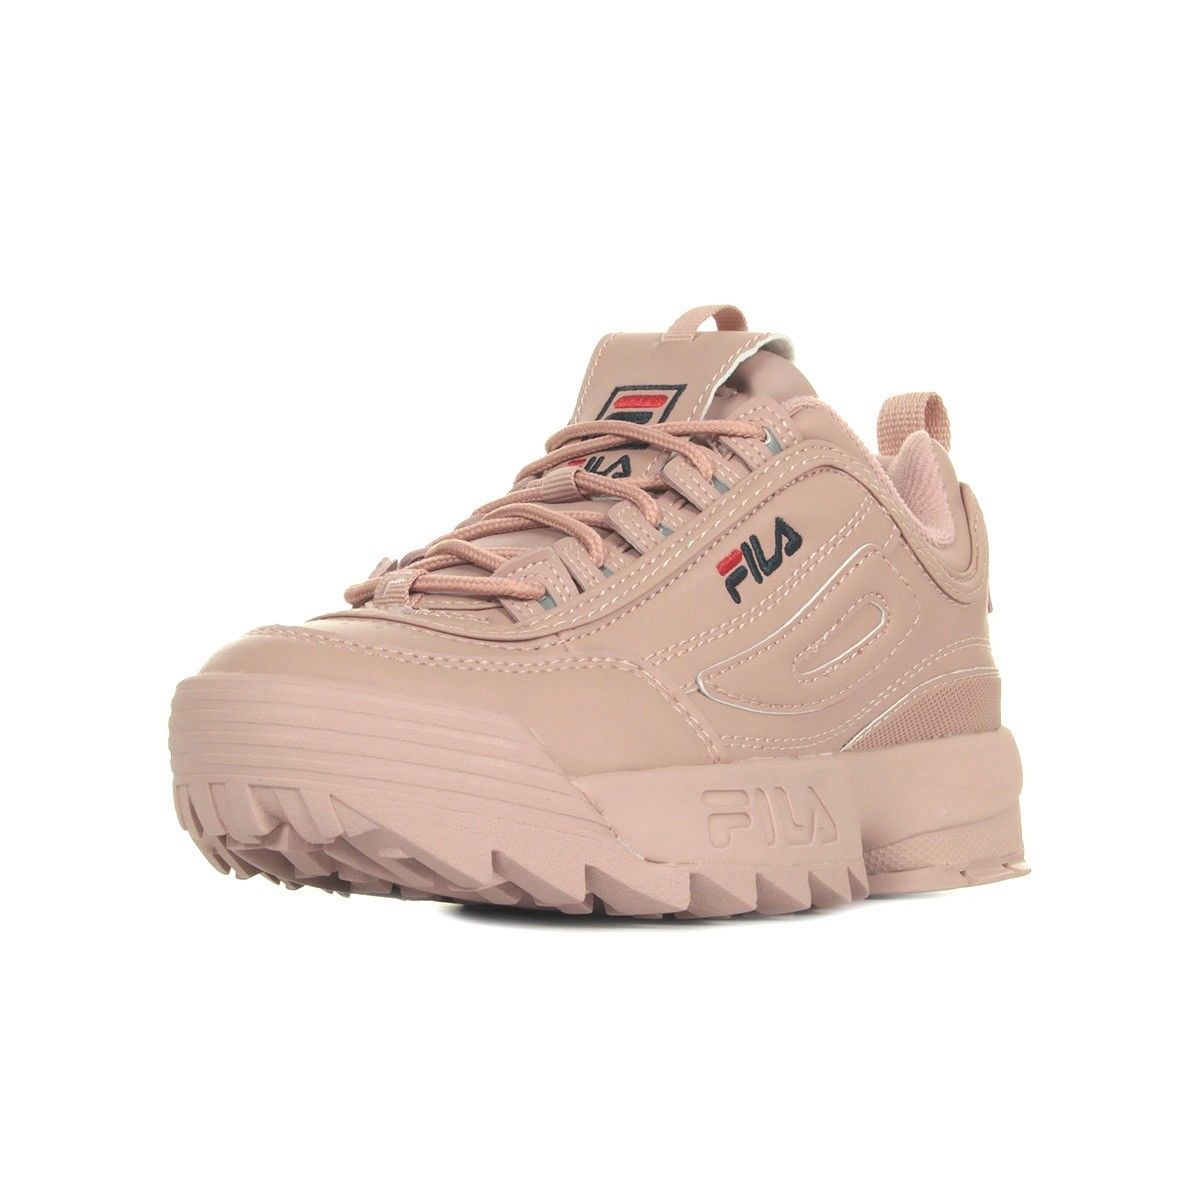 Disruptor Fila Lilac Wn's Baskets Keepsake Low Chaussures Femme rCWBdxoQe